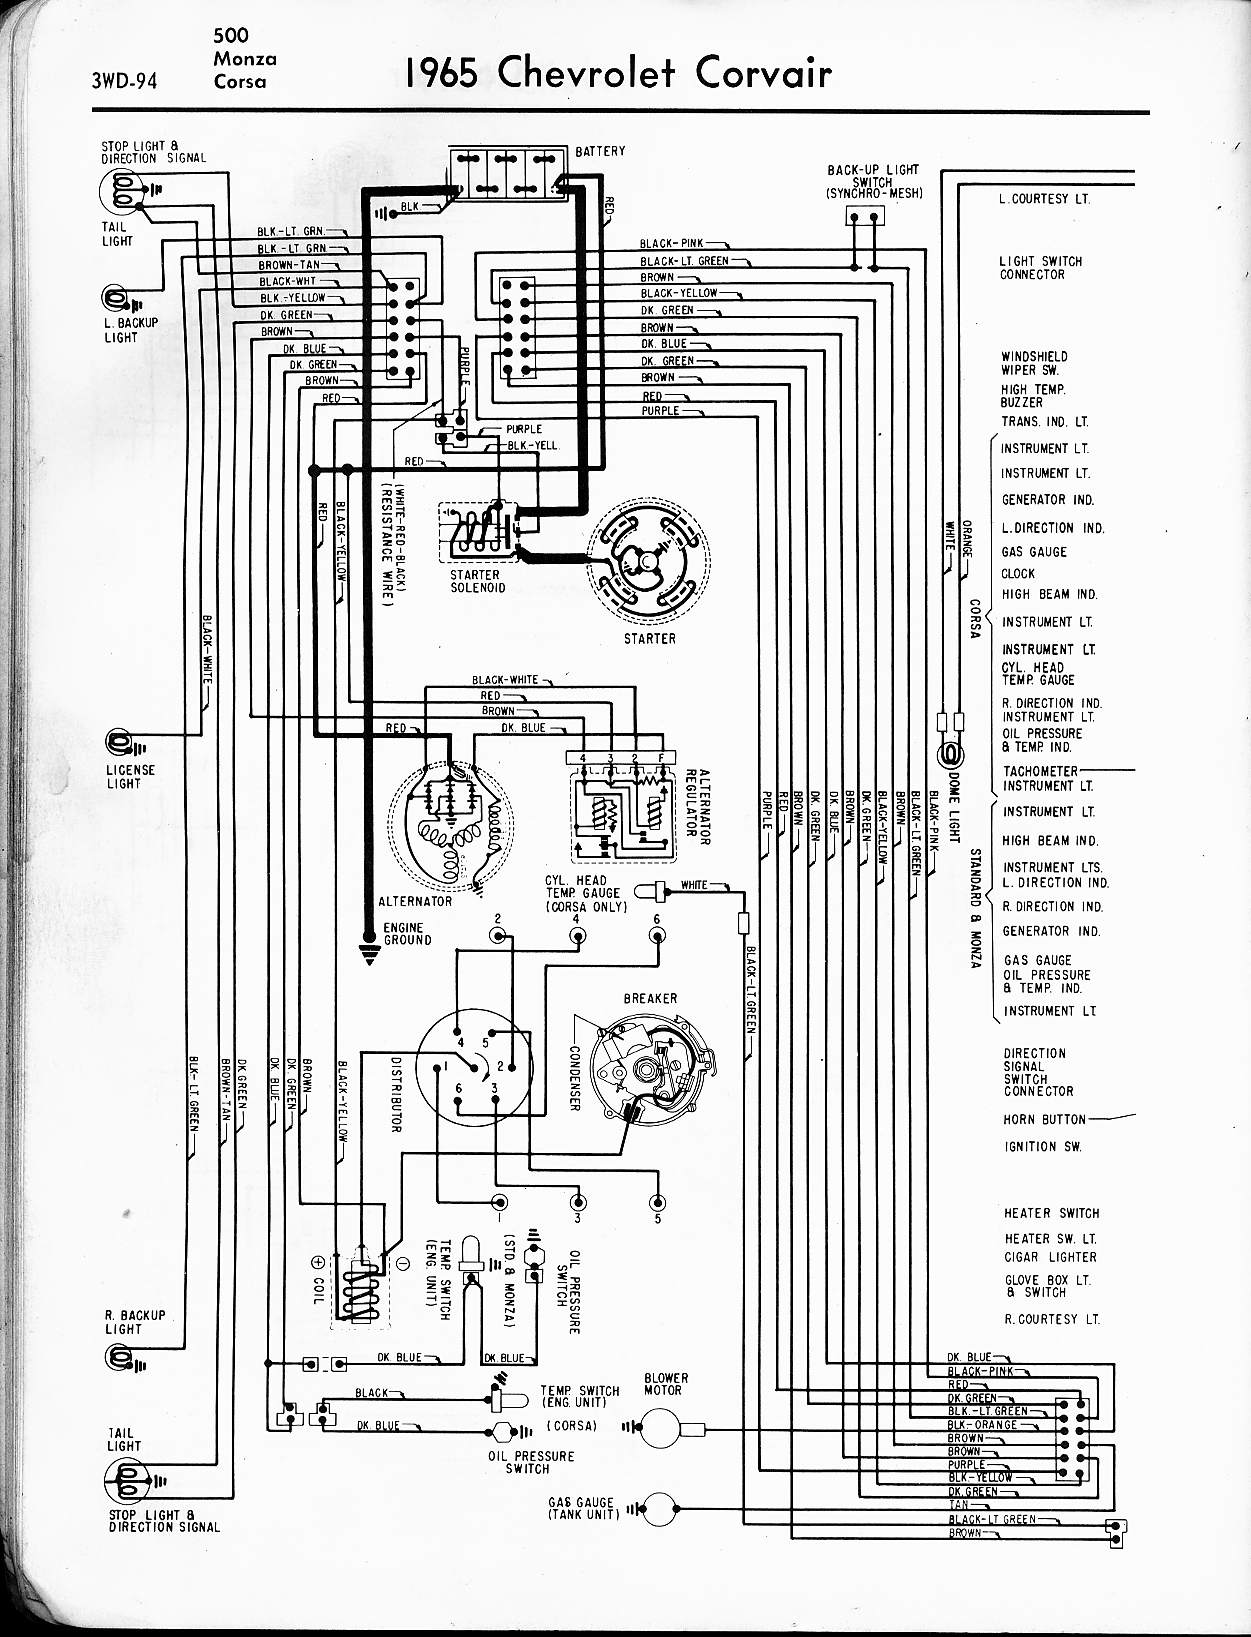 1965 corvair wiring harness wiring diagram pictures u2022 rh mapavick co uk  1964 Impala Tail Light